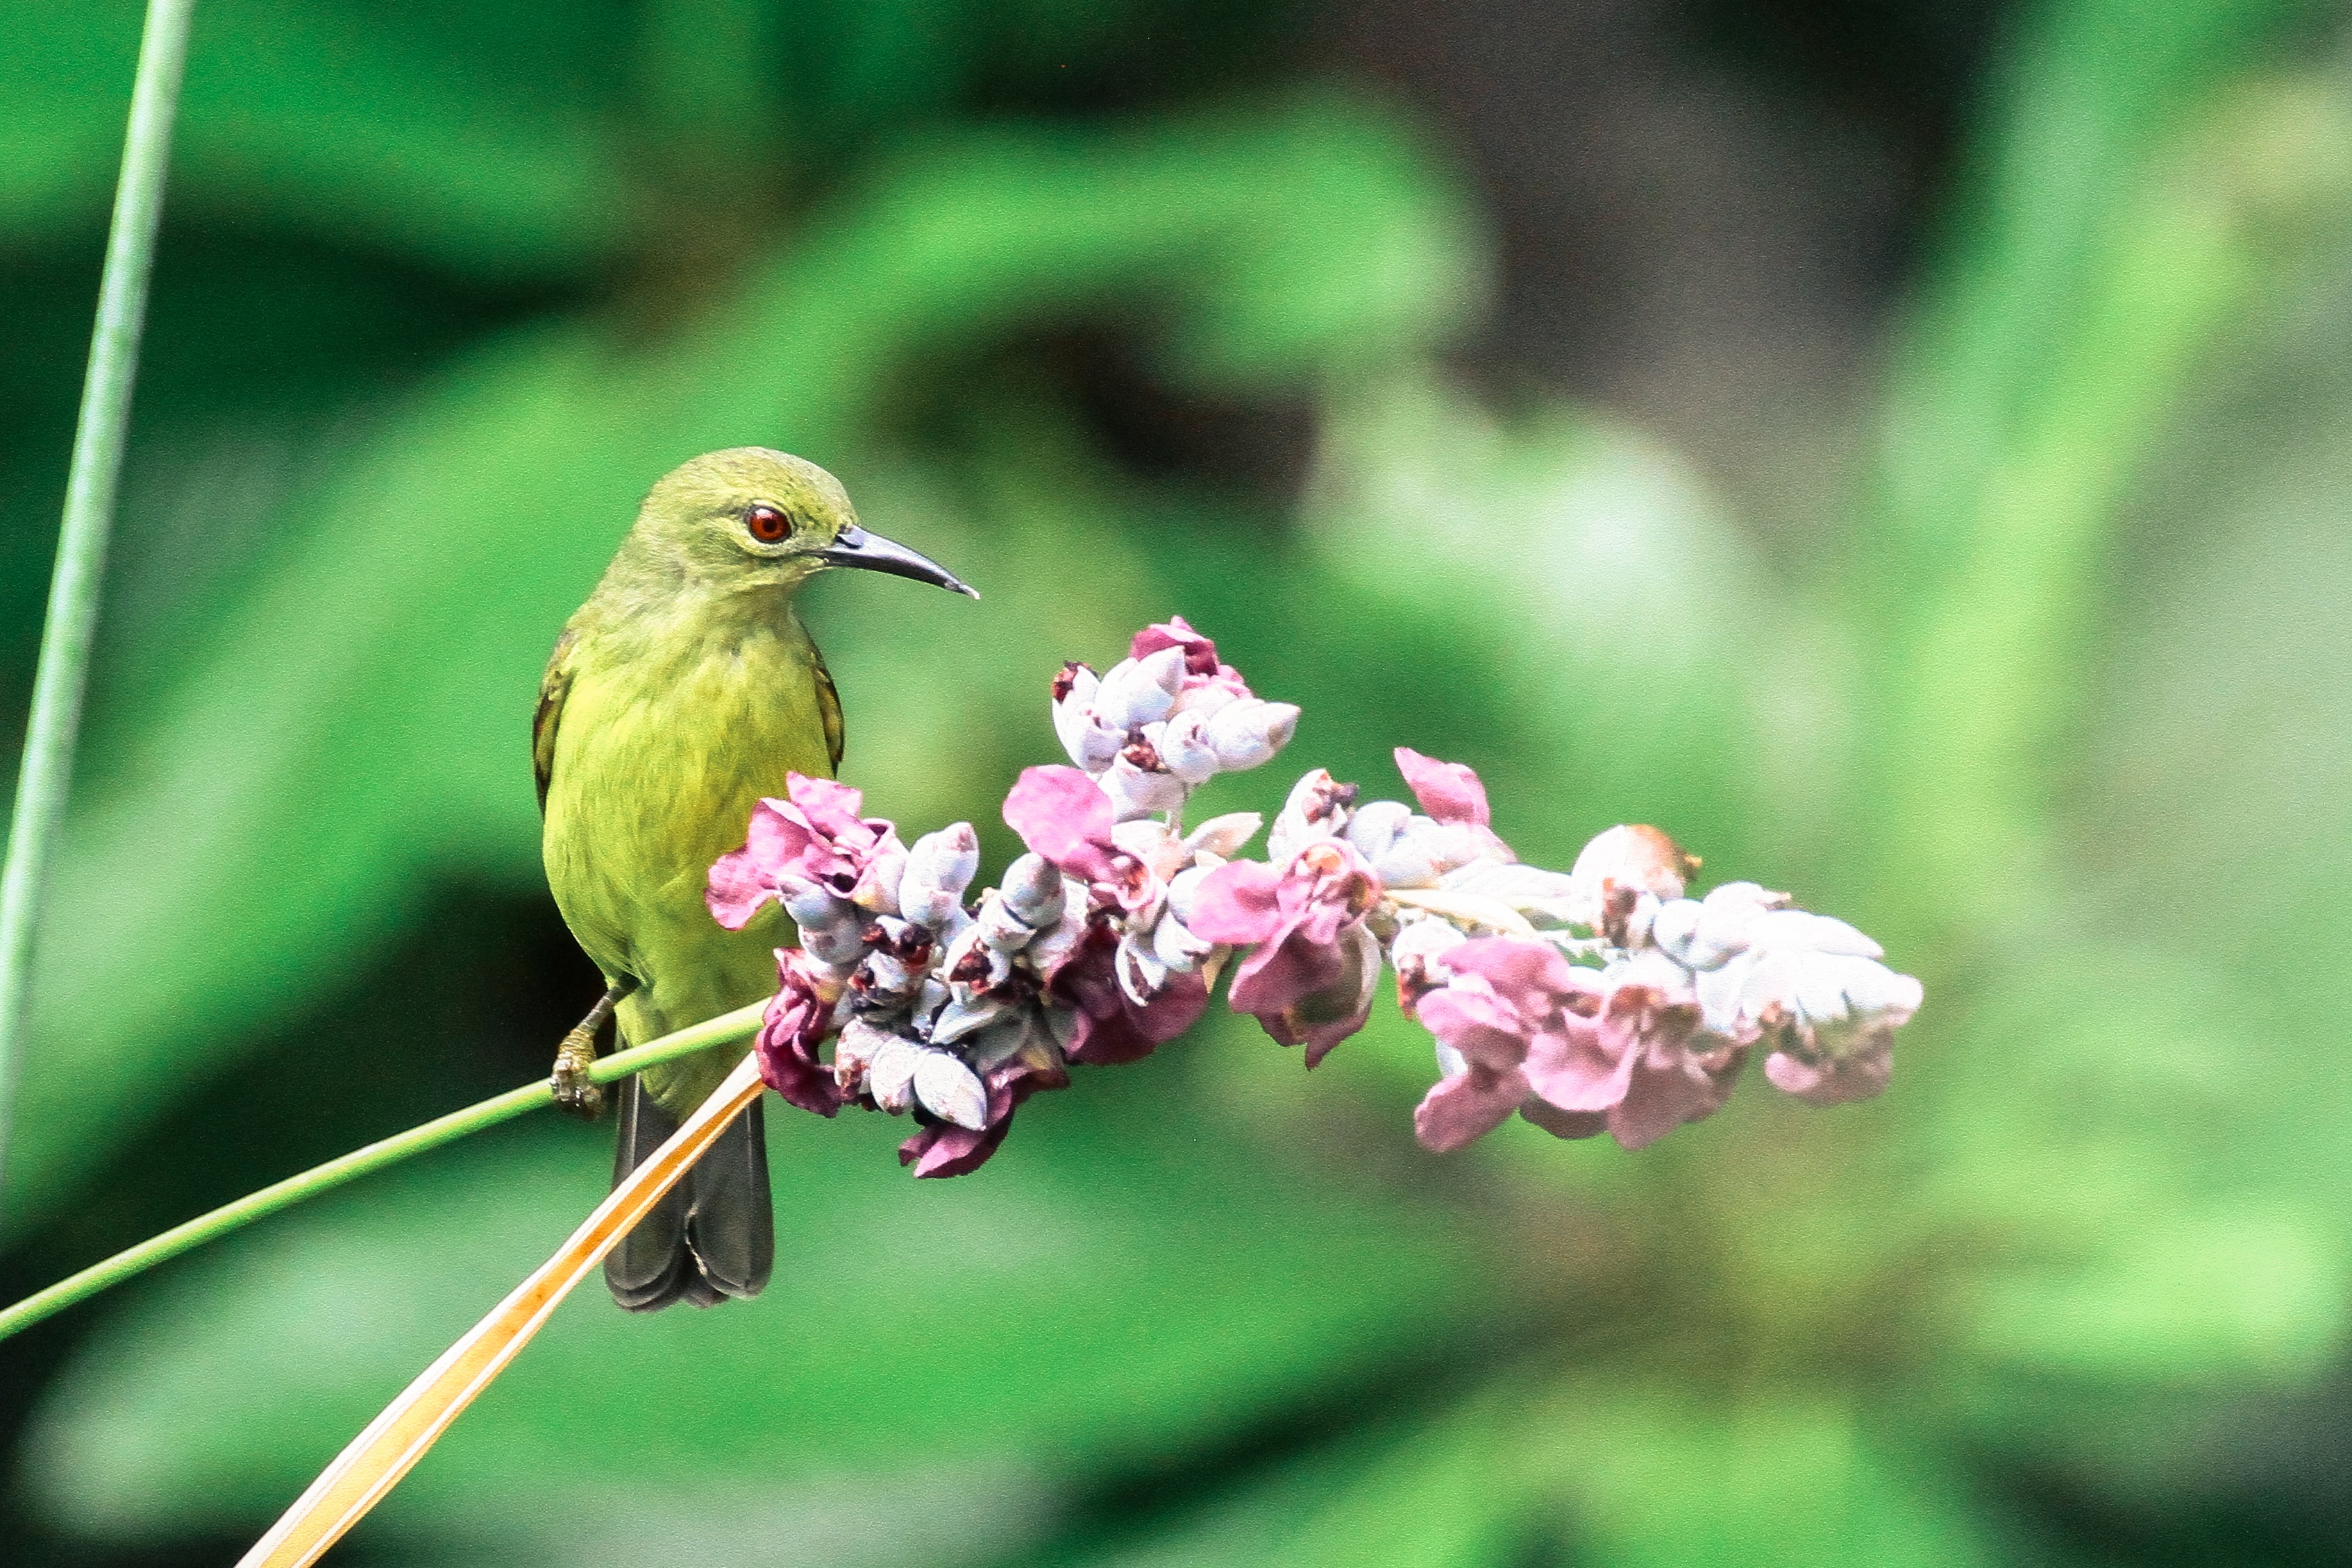 green bird beside the pink flower